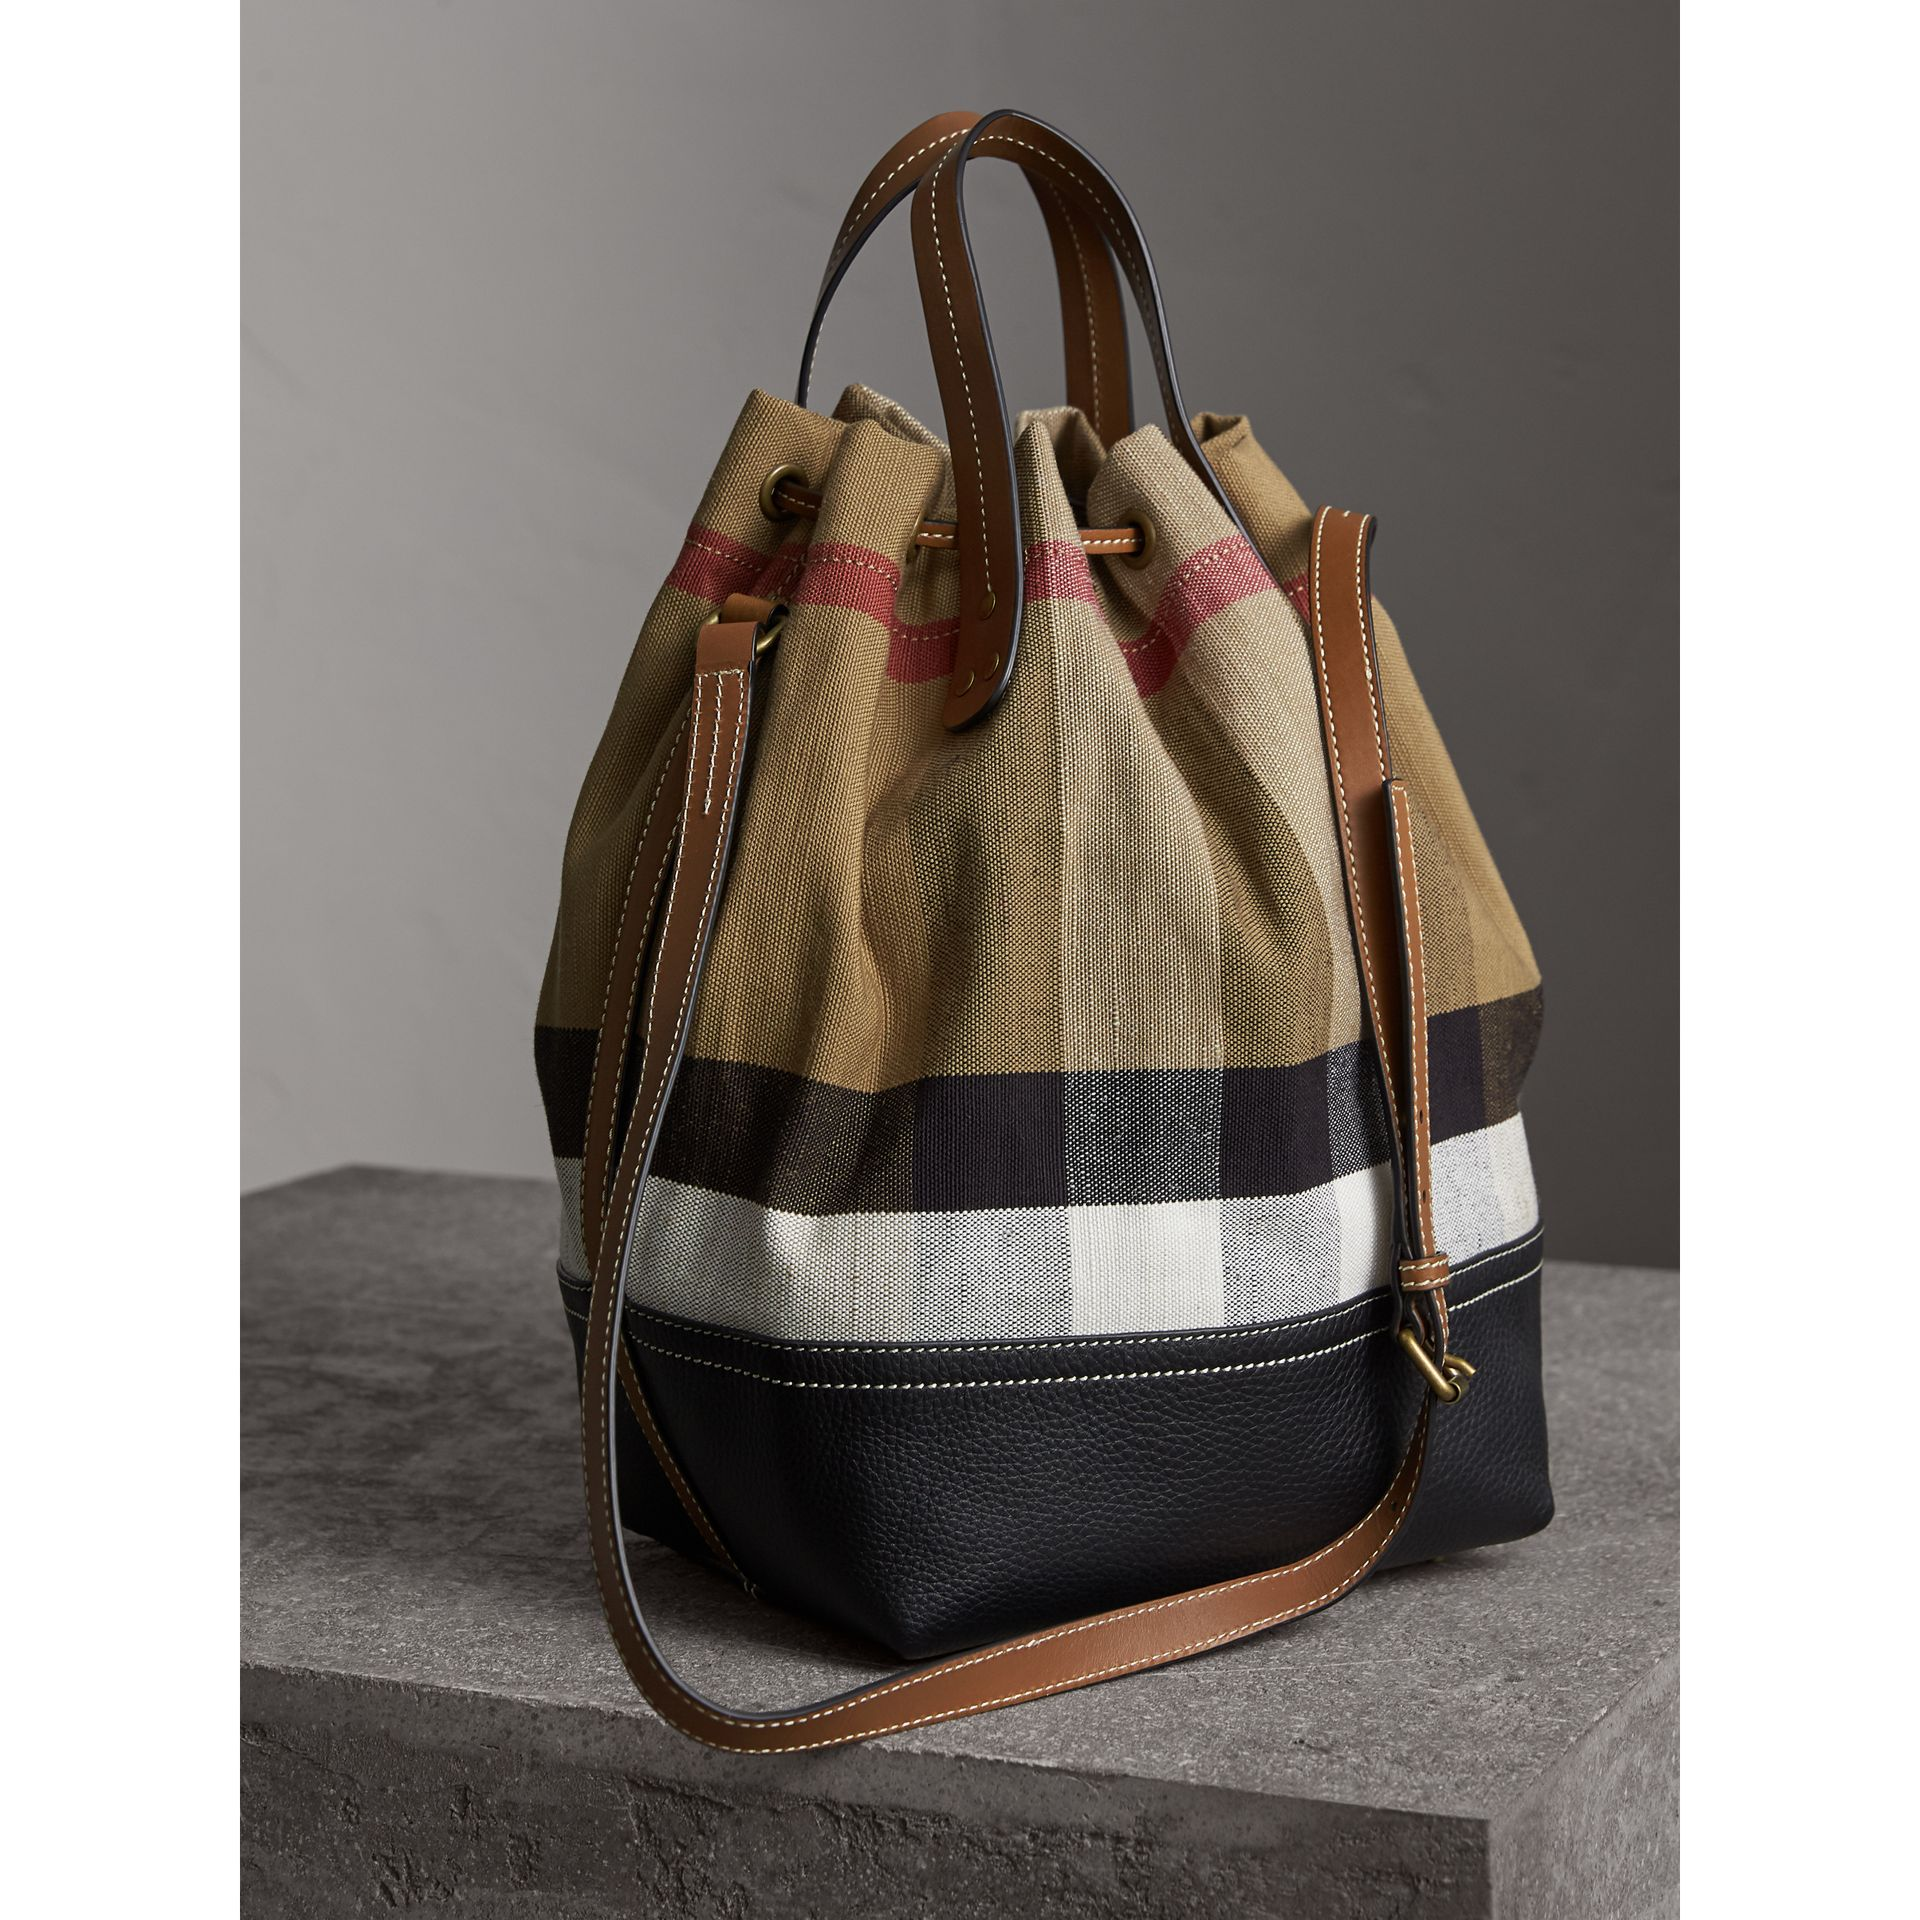 Medium Canvas Check Bucket Bag in Tan - Women | Burberry - gallery image 4